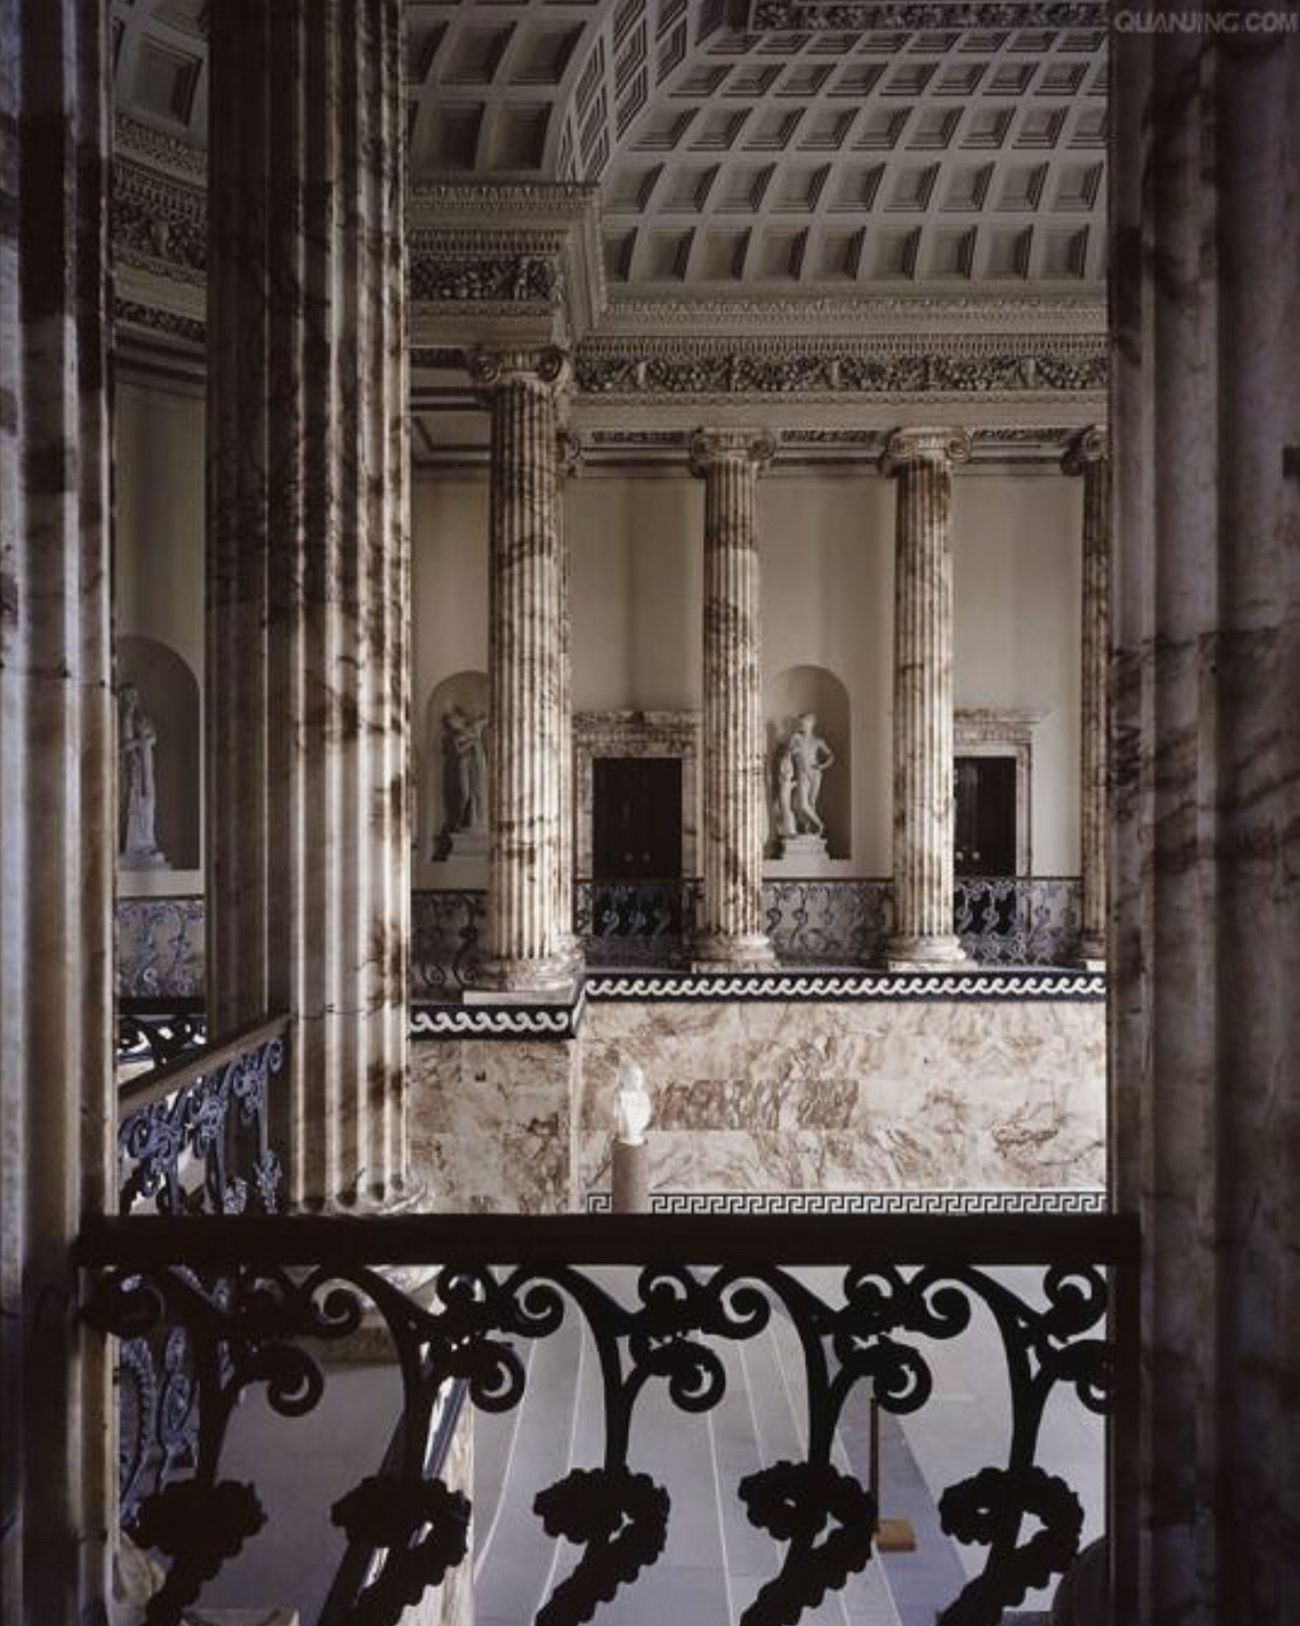 Architectural Column Indoors  Architecture Built Structure Religion Place Of Worship No People Day Holkham Duchess Low Angle View High Angle View View From The Window... Human Representation